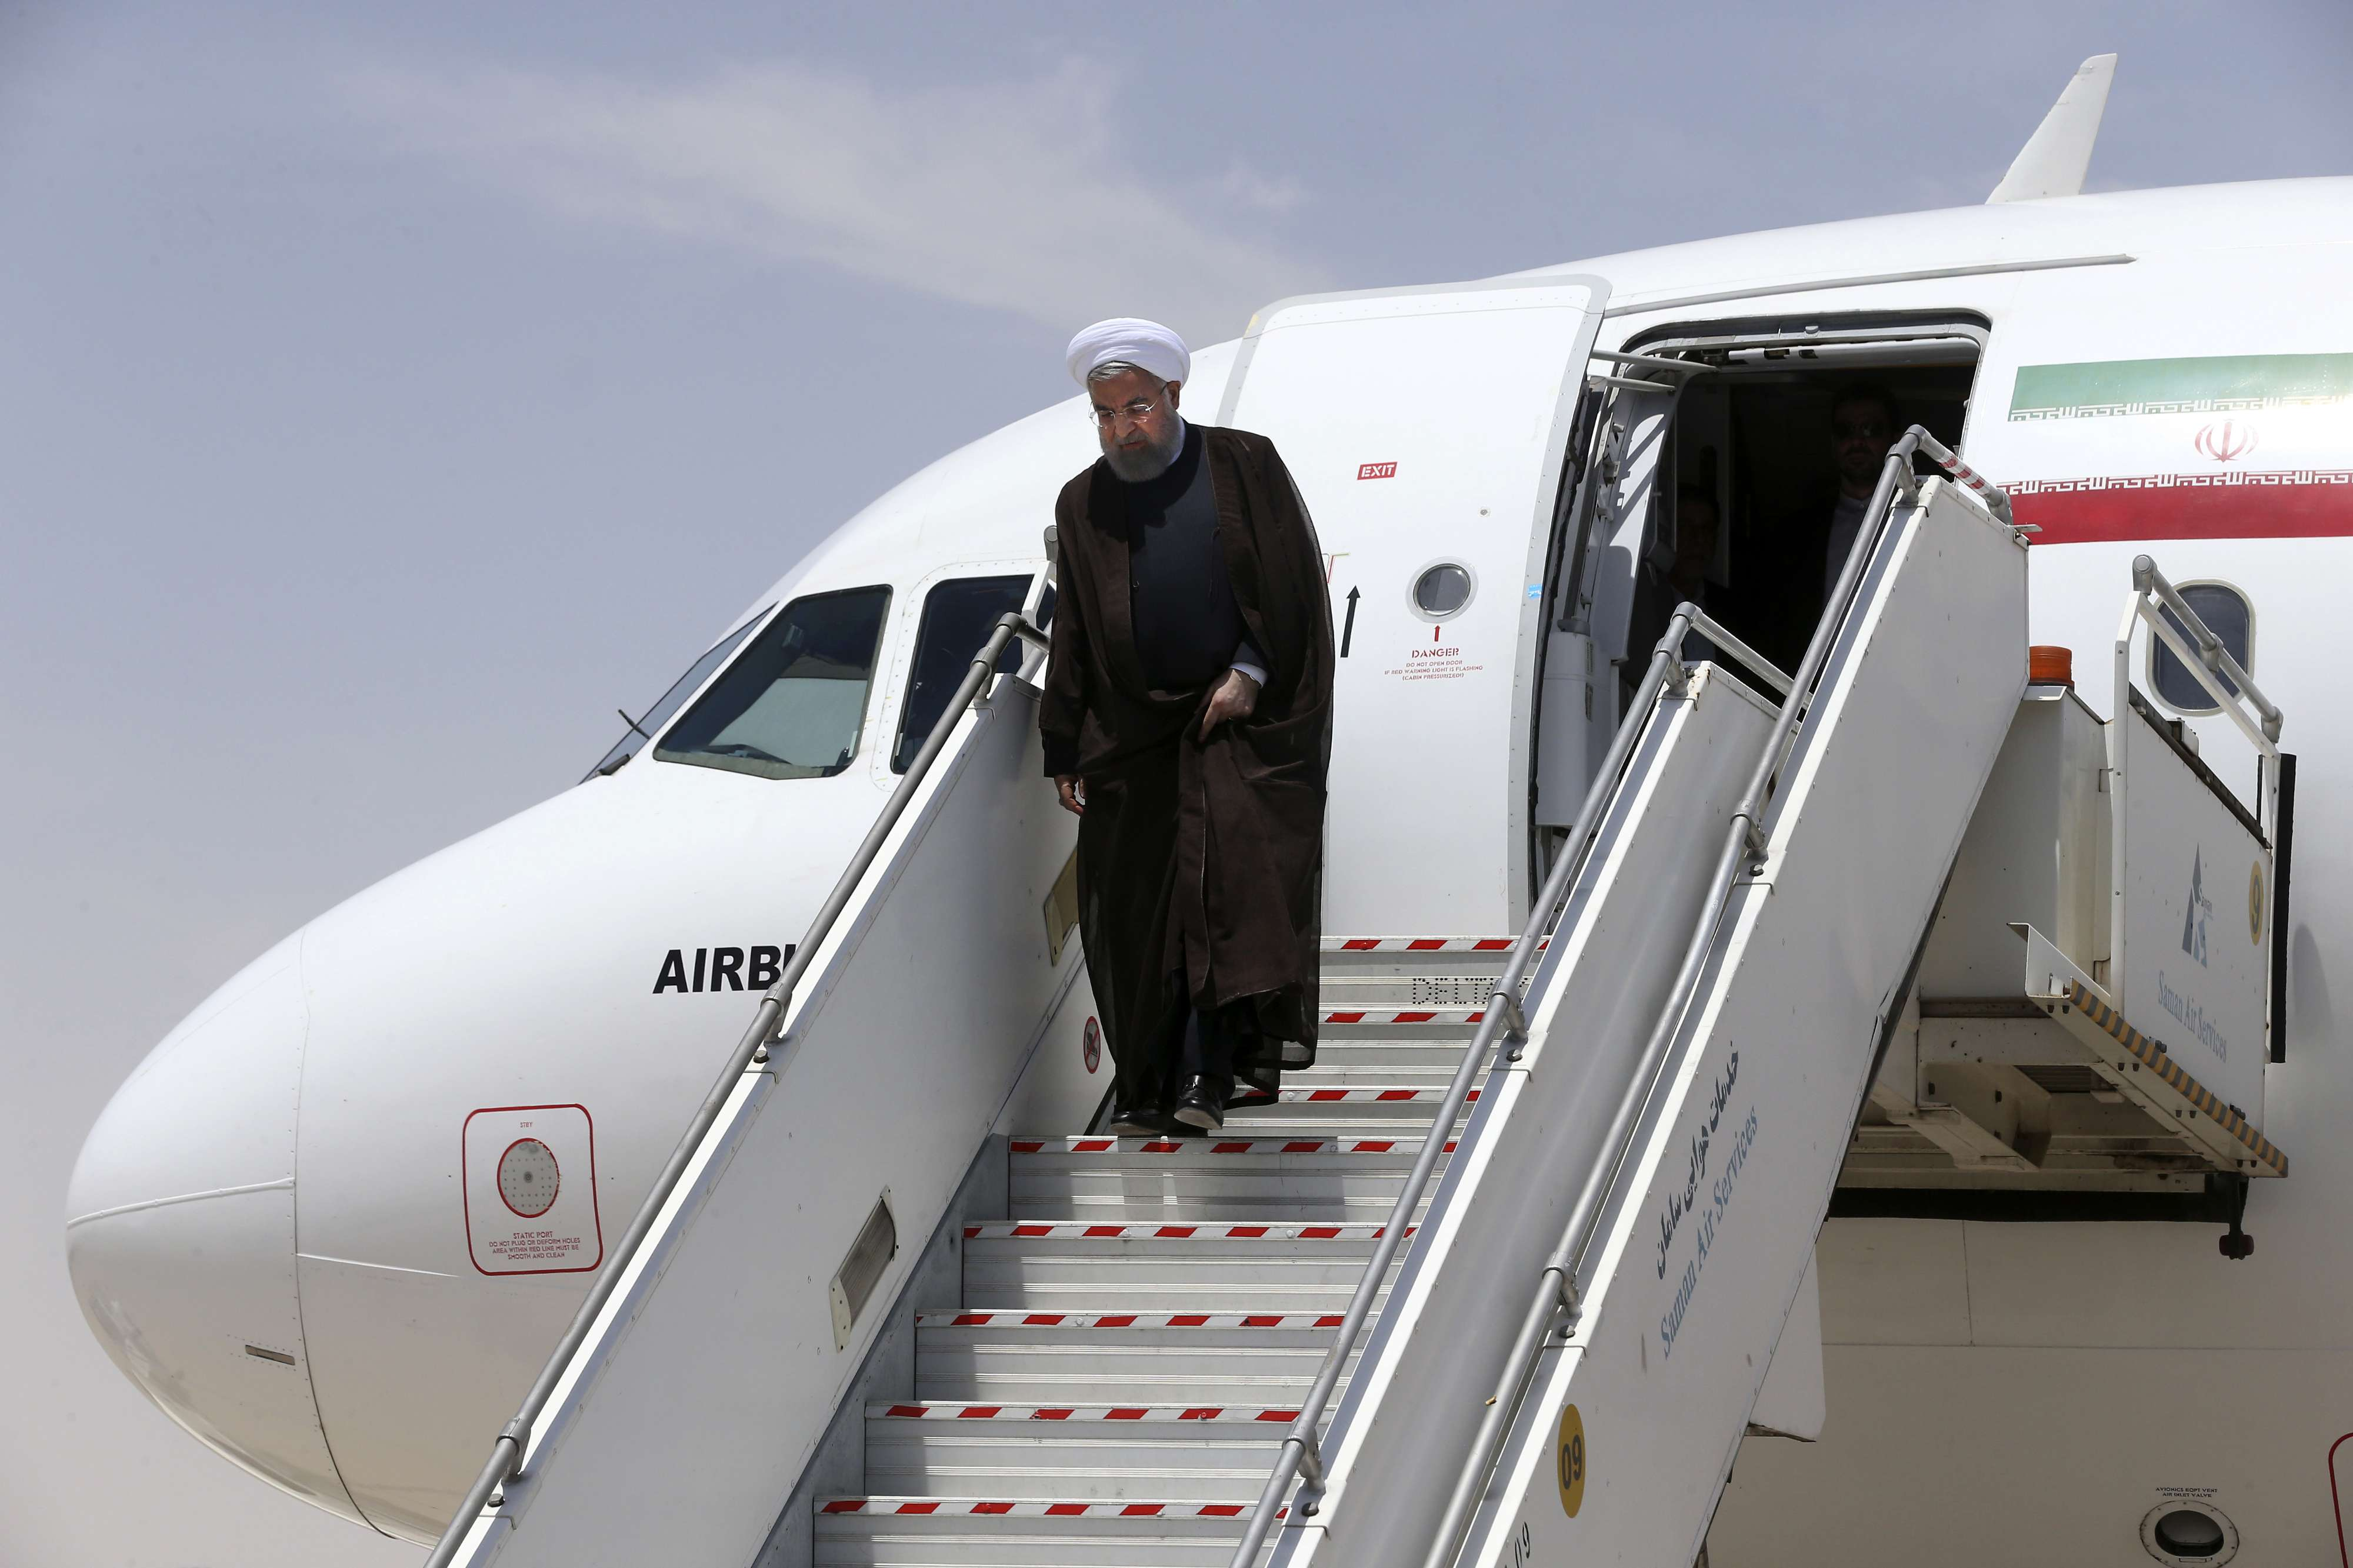 Iranian President Hassan Rohani steps out of his plane upon arrival at the Shahid Beheshti airport in the city of Isfahan, on May 14. (AP)